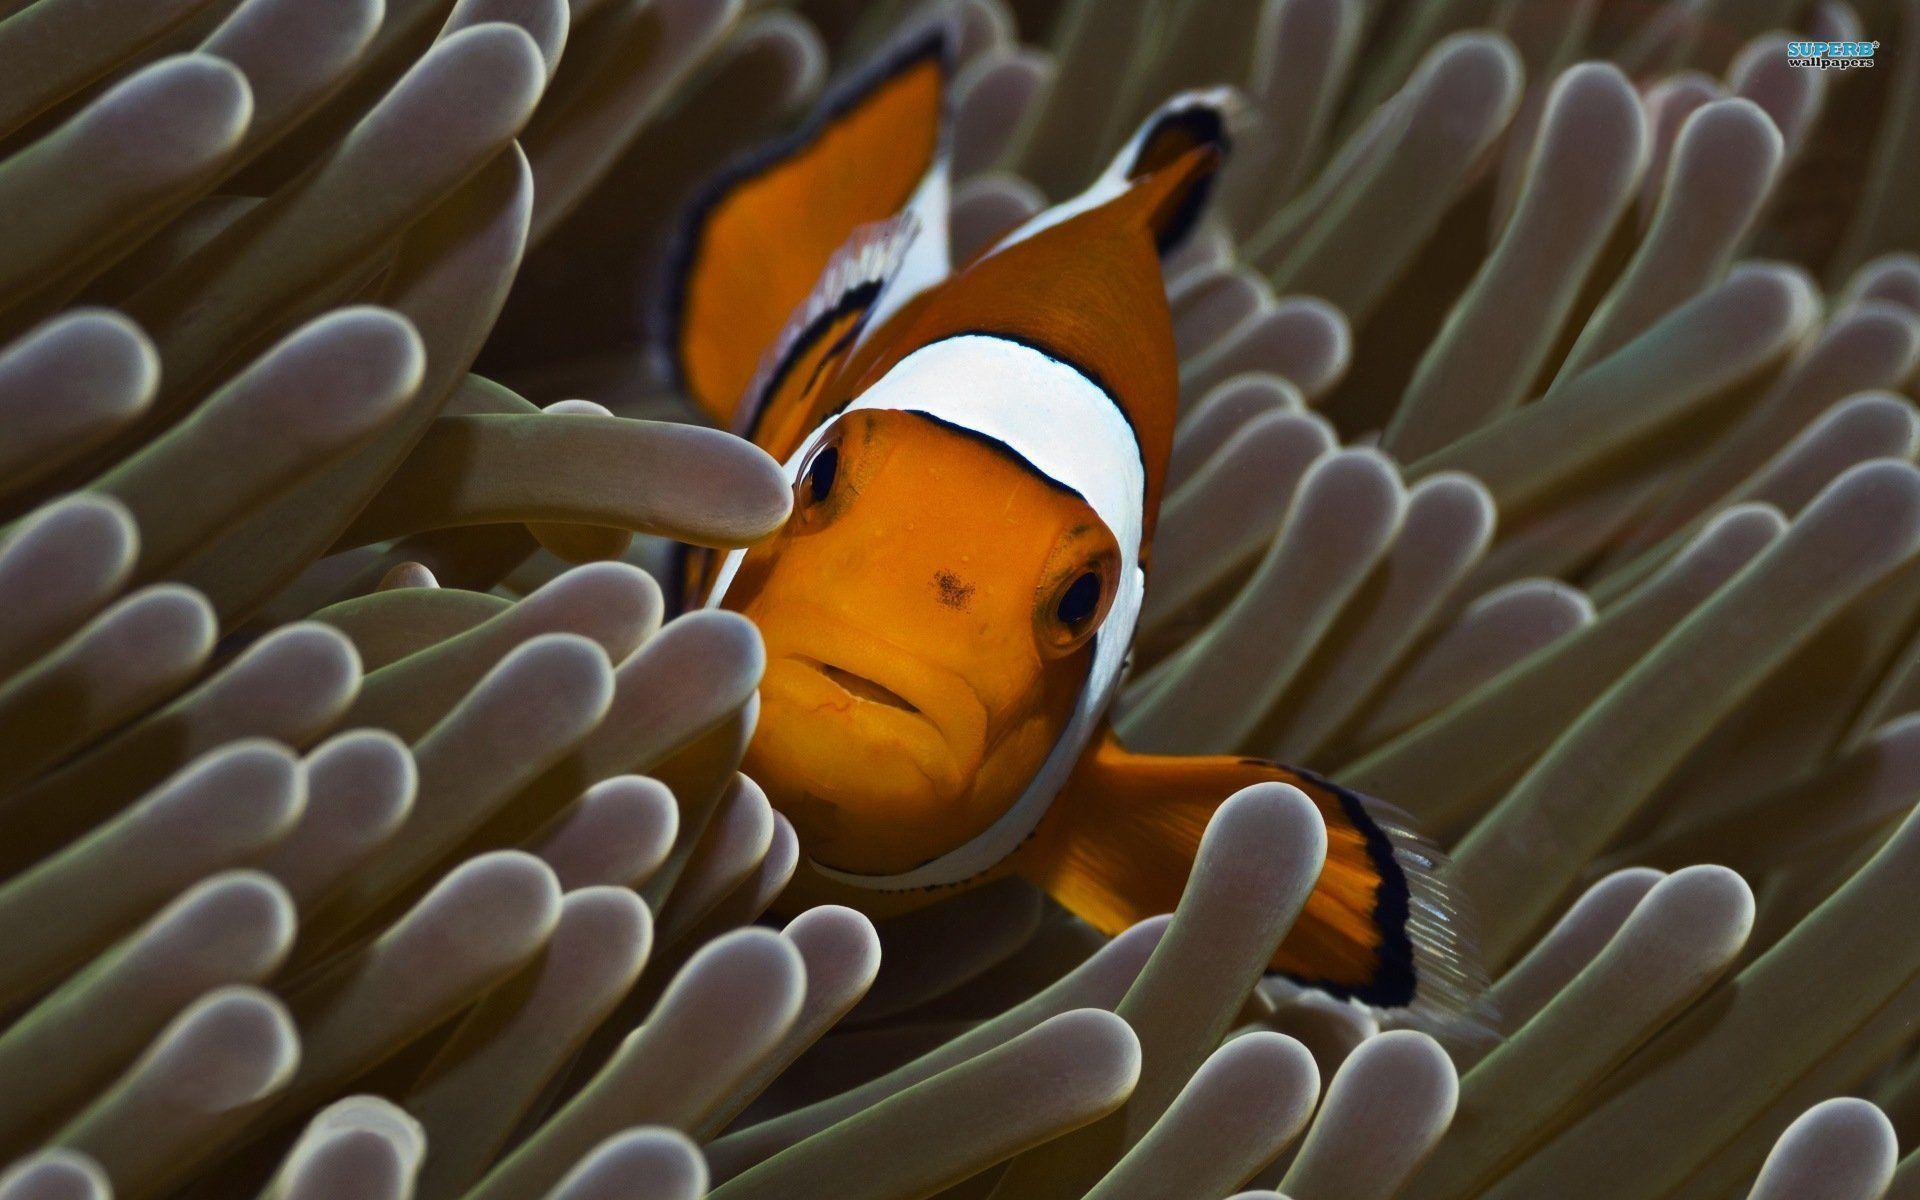 Related Pictures Animated Clown Fish Mobile Wallpapers Animated Car